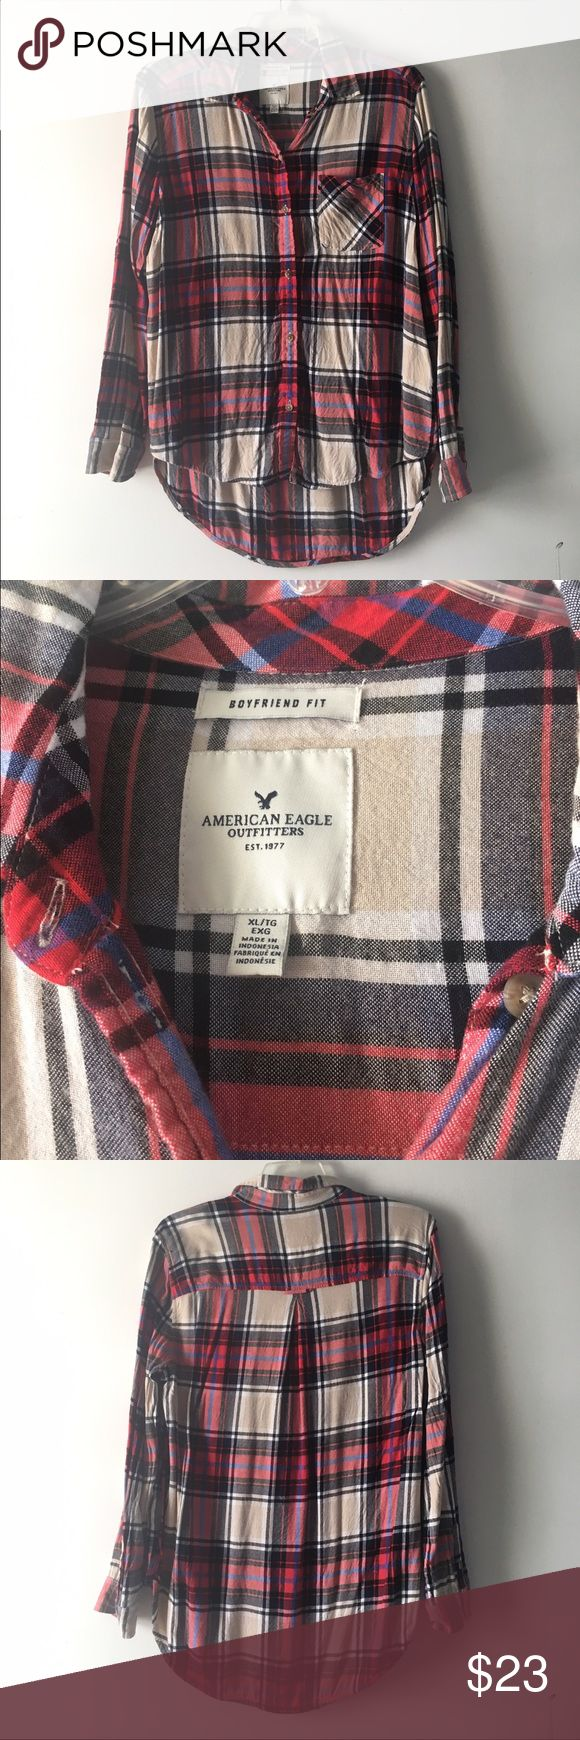 ⭐American Eagle Plaid Flannel Boyfriend fit. Longer in back. Worn about 5 times.  CAN ONLY BE BUNDLED WITH OTHER ITEMS THAT HAVE A ⭐️ IN THE TITLE DUE TO ITEMS CURRENT SHIPPING LOCATION. American Eagle Outfitters Tops Button Down Shirts